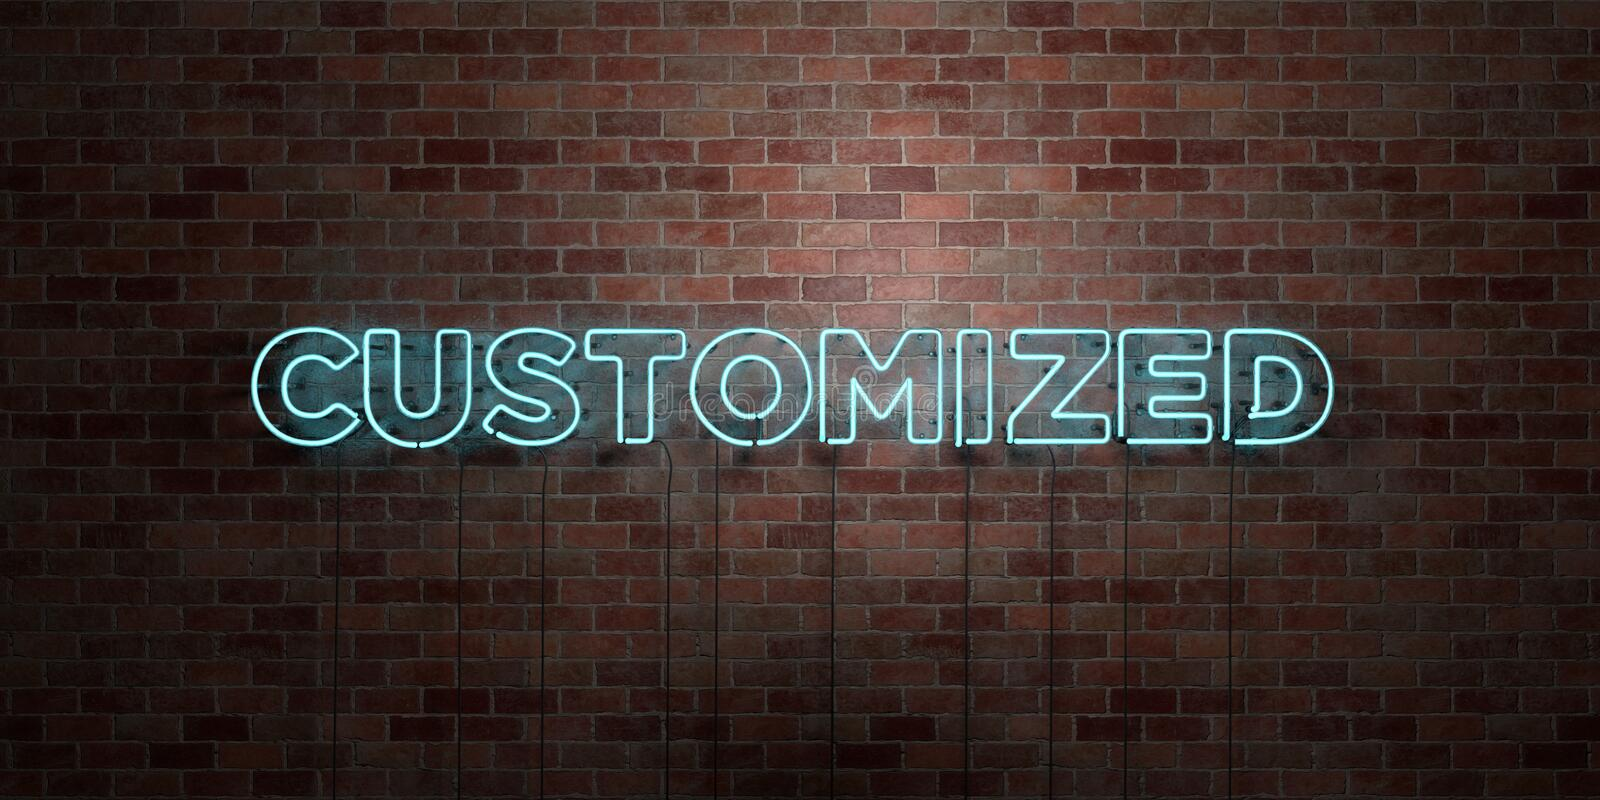 CUSTOMIZED - fluorescent Neon tube Sign on brickwork - Front view - 3D rendered royalty free stock picture. Can be used for online banner ads and direct stock image